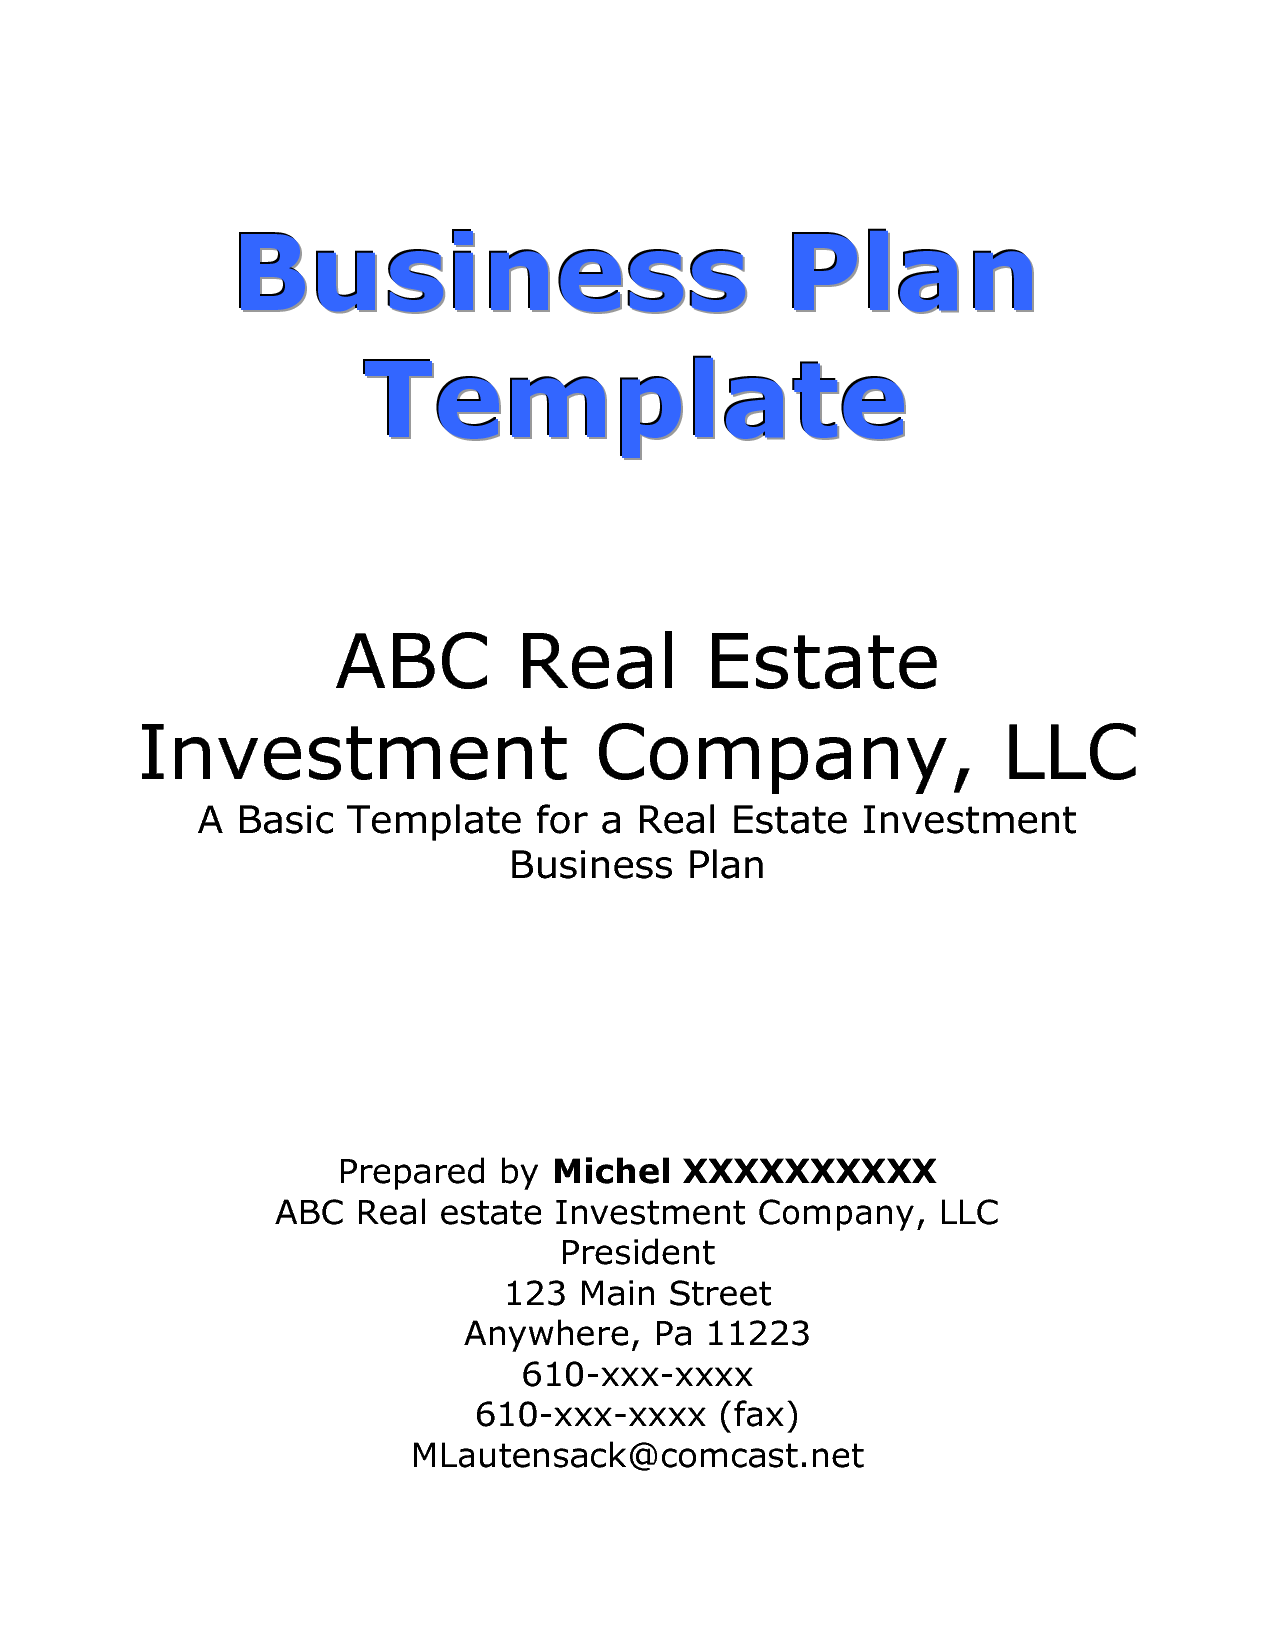 business plan cover letter for investors Our investment club in my local subdivision is enclosed is a check for $150 to cover the cost of example 2: business letter for requesting company.